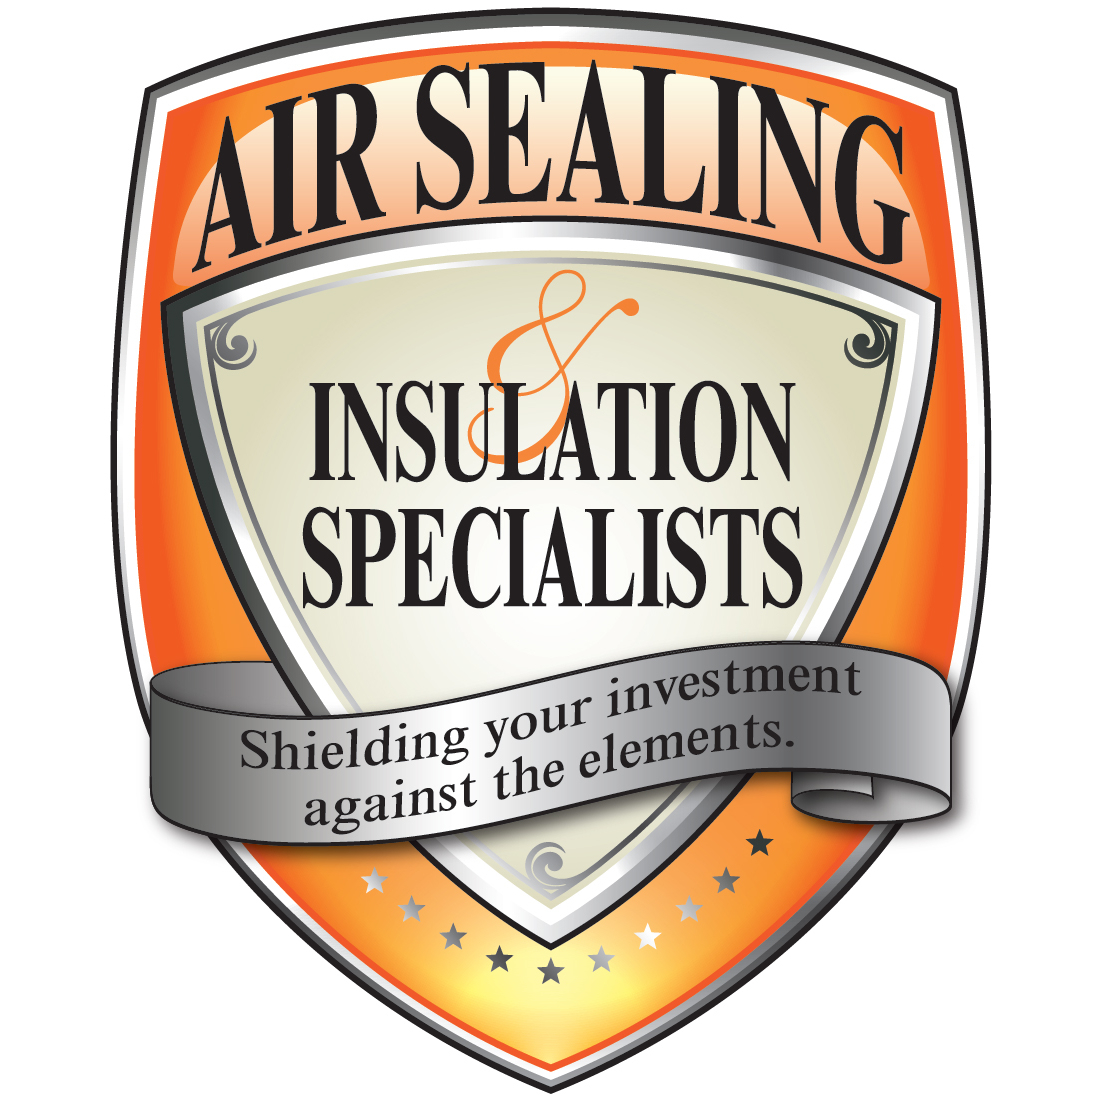 Air Sealing And Insulation Specialists In Green Bay Wi